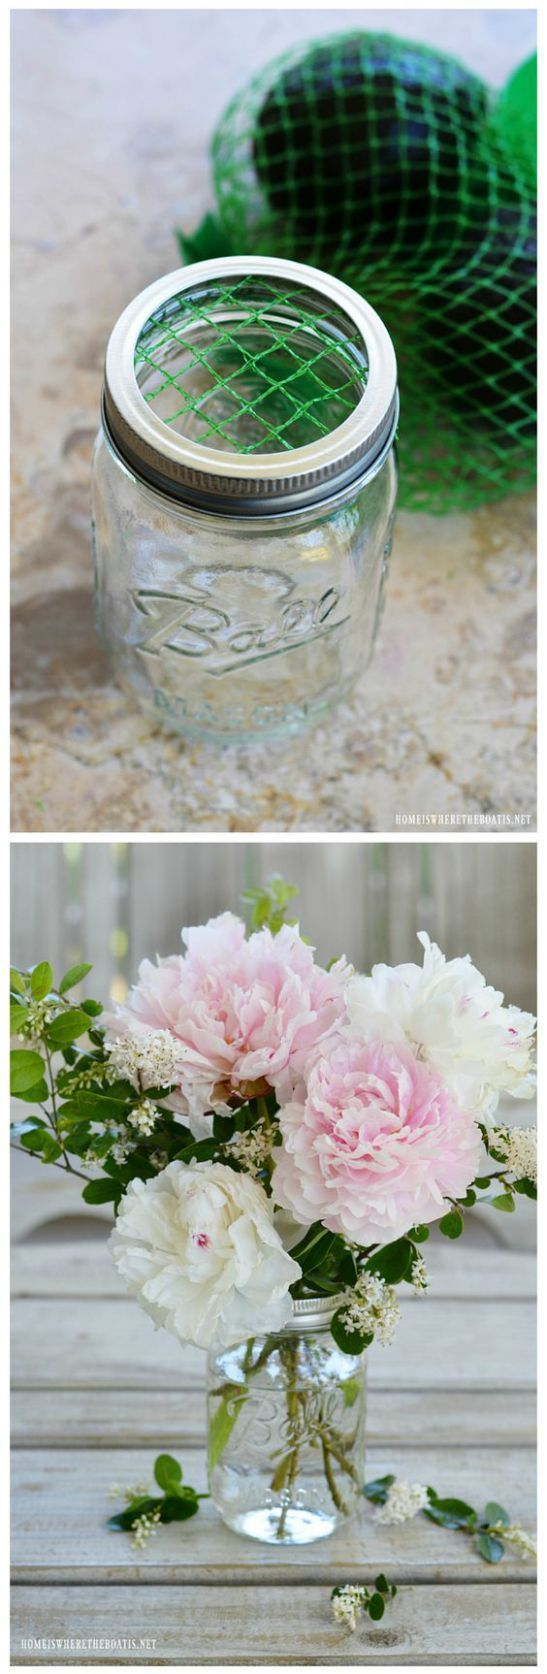 215 best tabletop flowers party ideas images on pinterest ideas ideas about diy life hacks crafts 2017 2018 garden bouquet tips and flower arranging hack using something izmirmasajfo Image collections